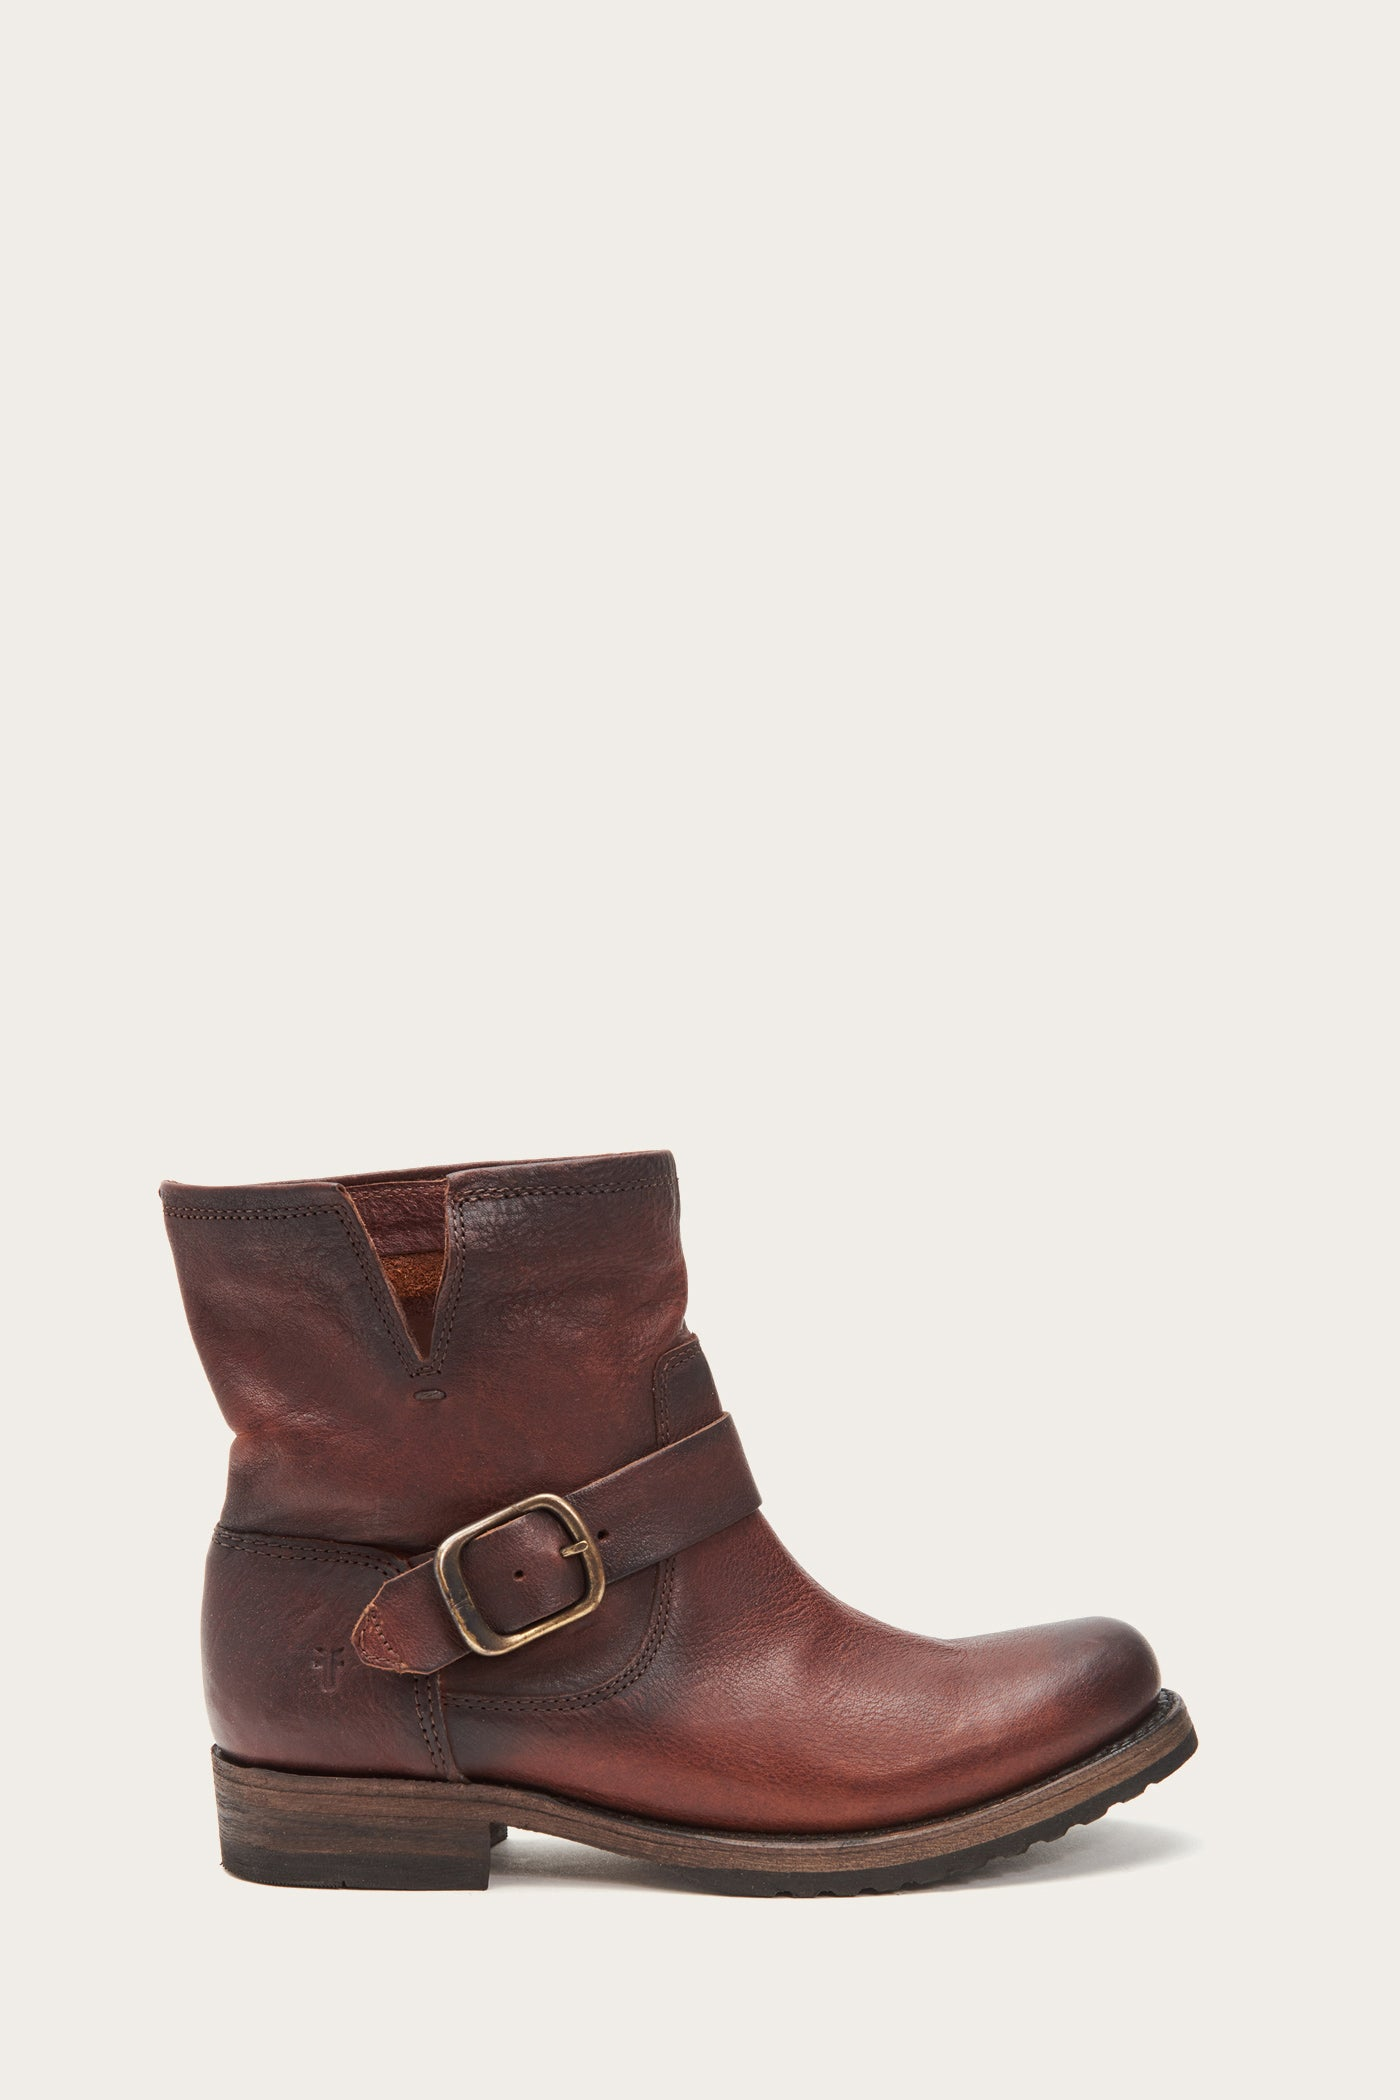 Frye And 1863 BootsSneakersShoes Men For WomenSince qzpUMSV